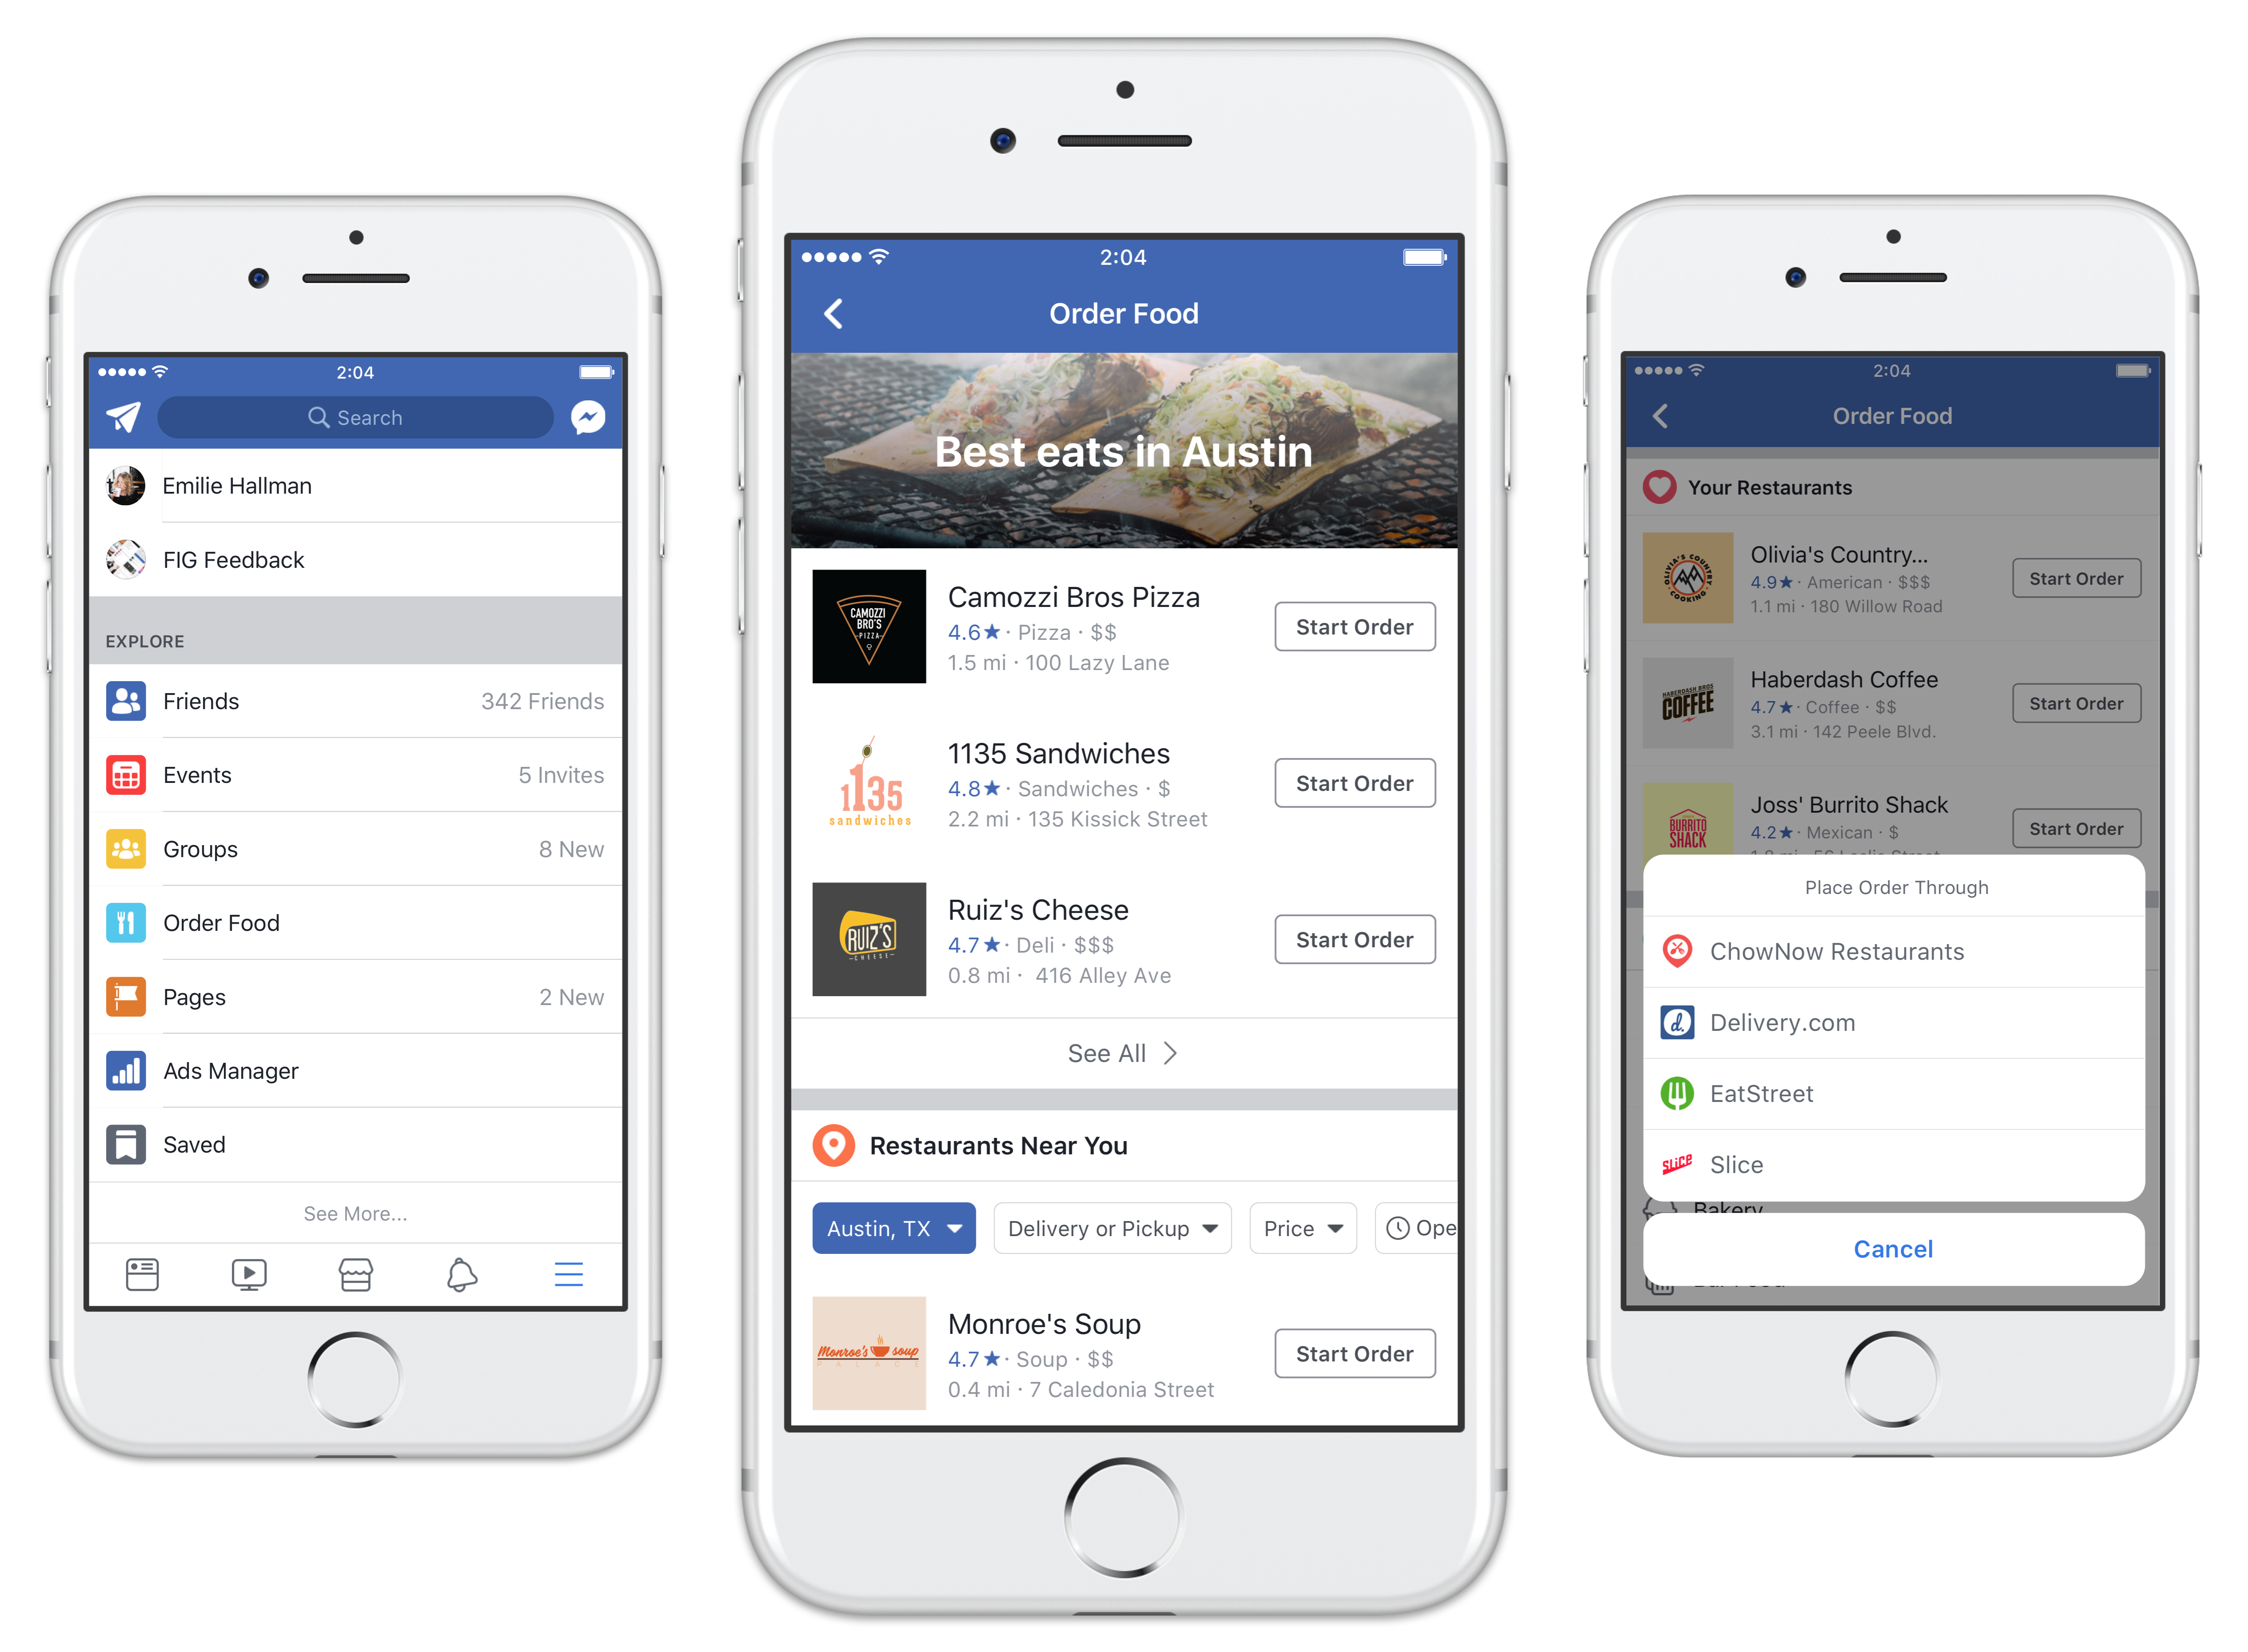 Facebook's food delivery feature now brings Five Guys to all